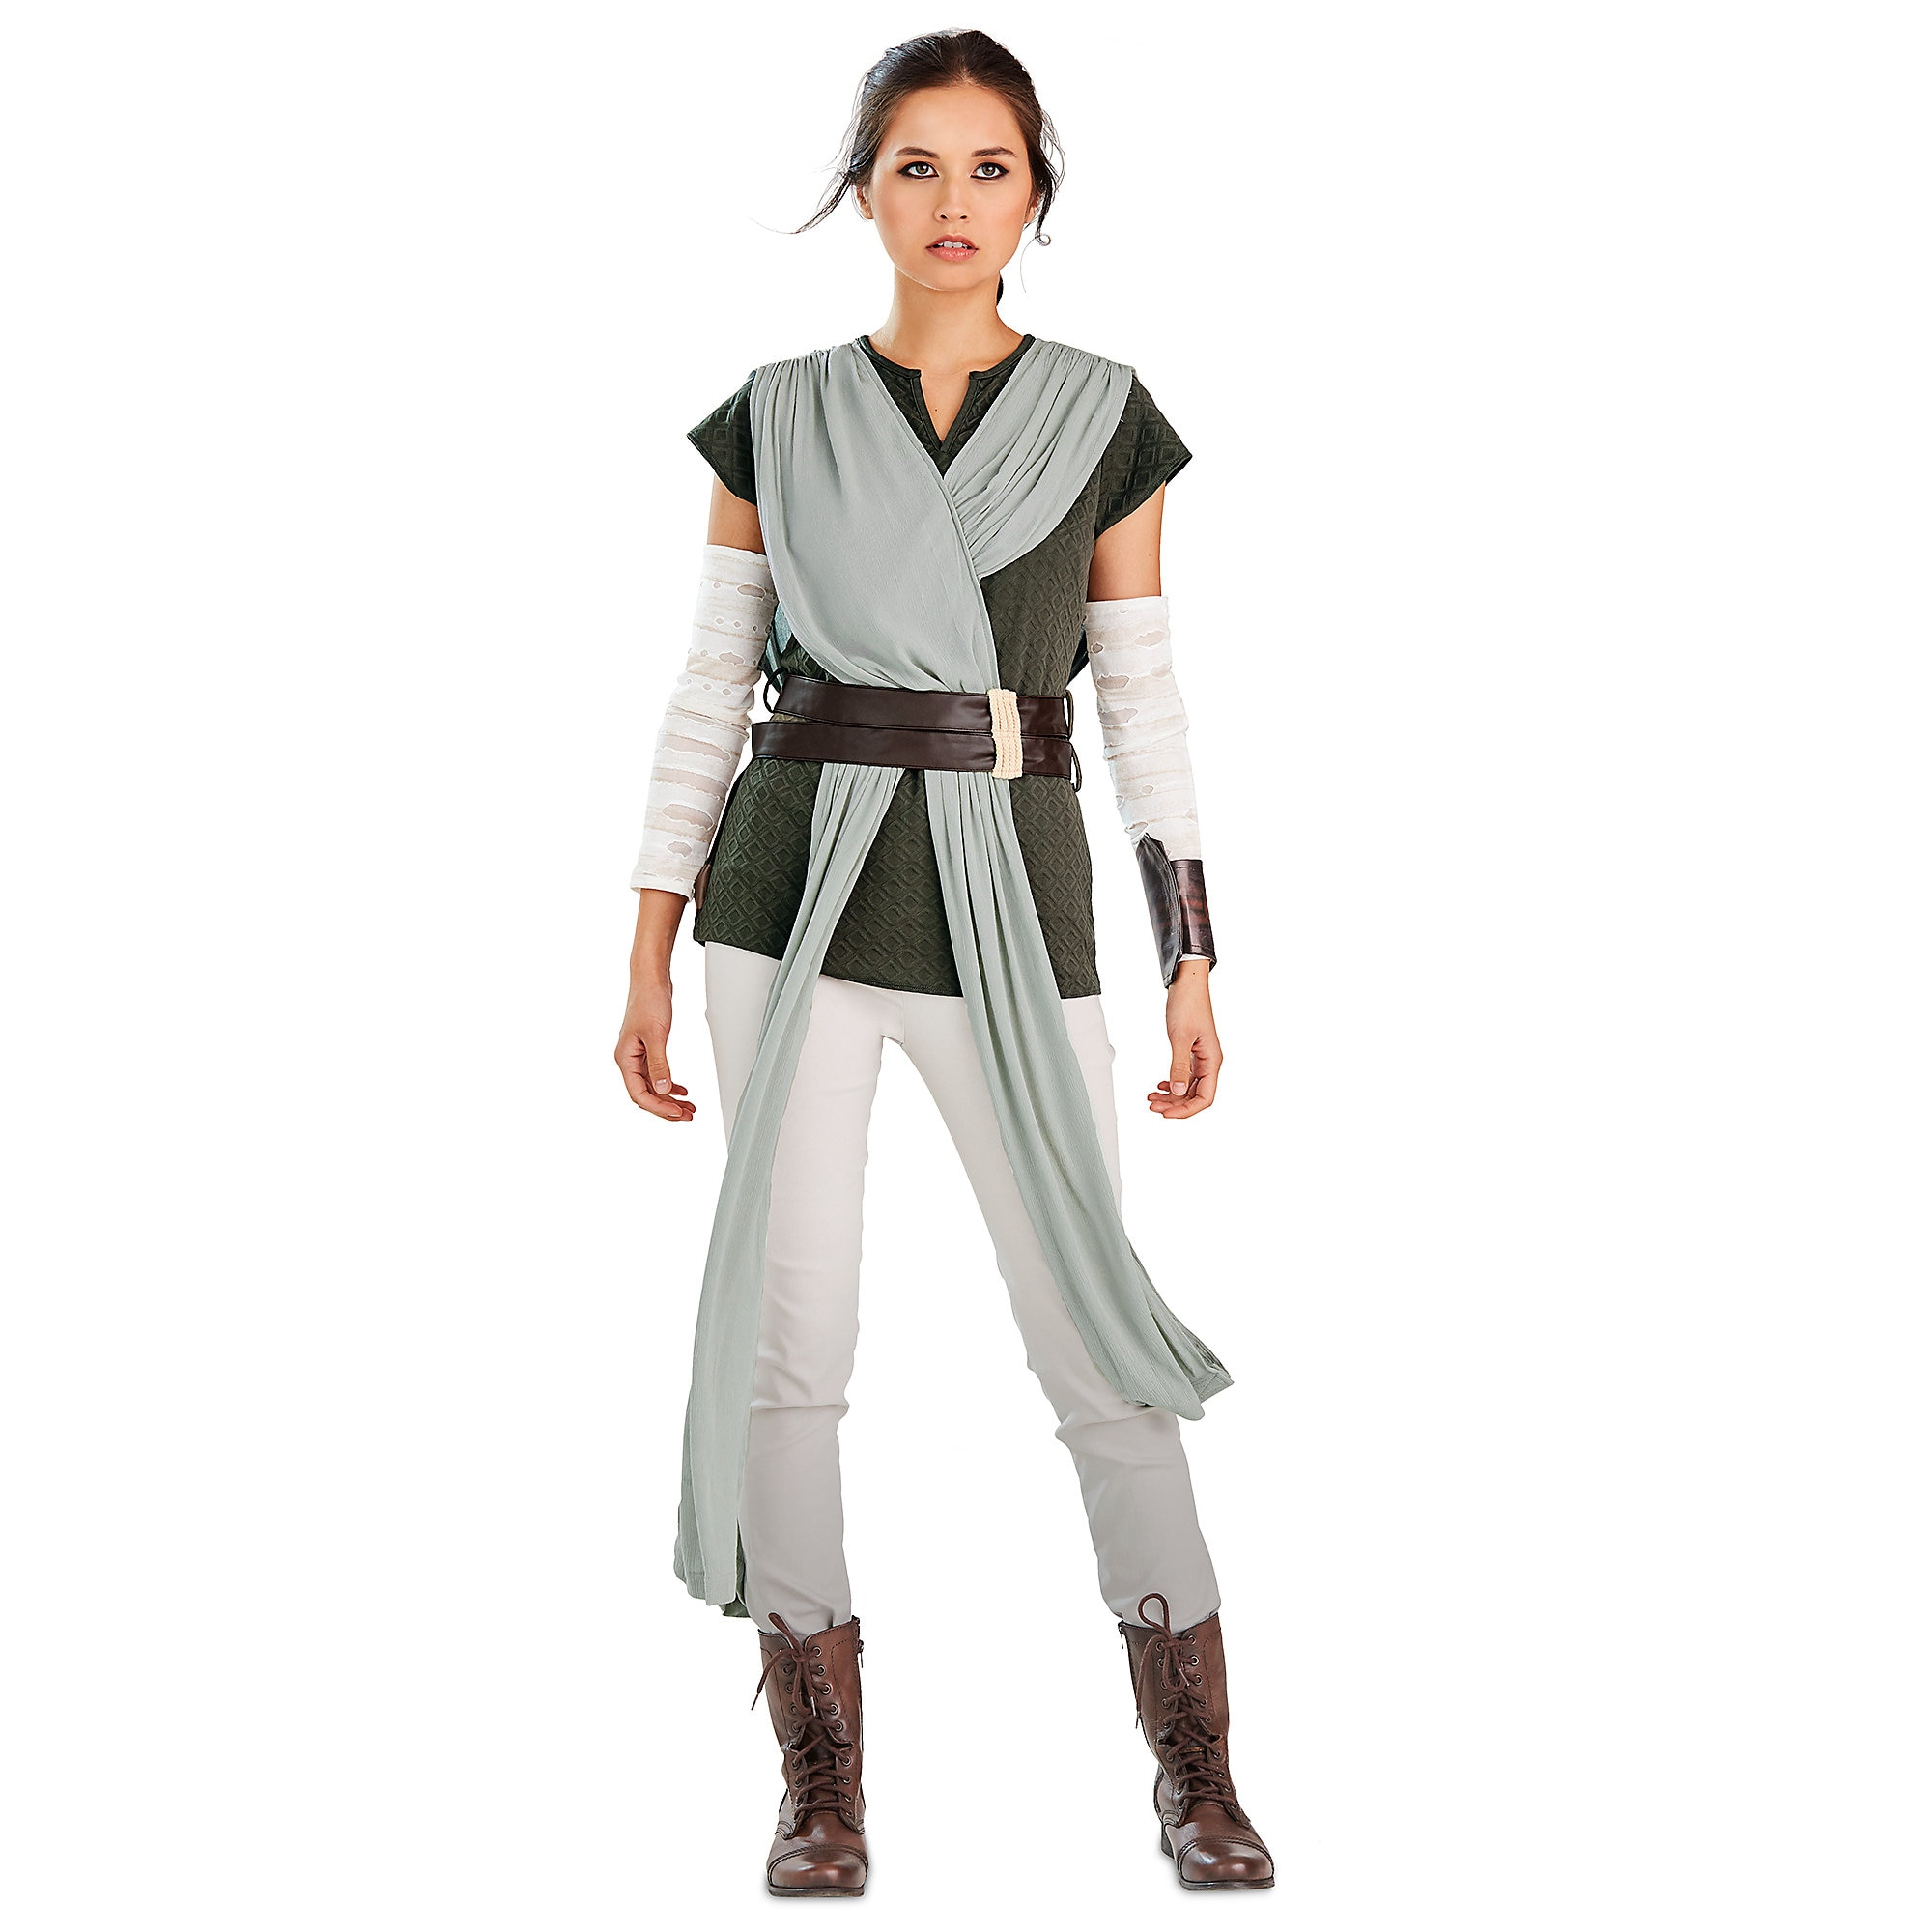 Rey Costume for Adults - Star Wars: The Last Jedi